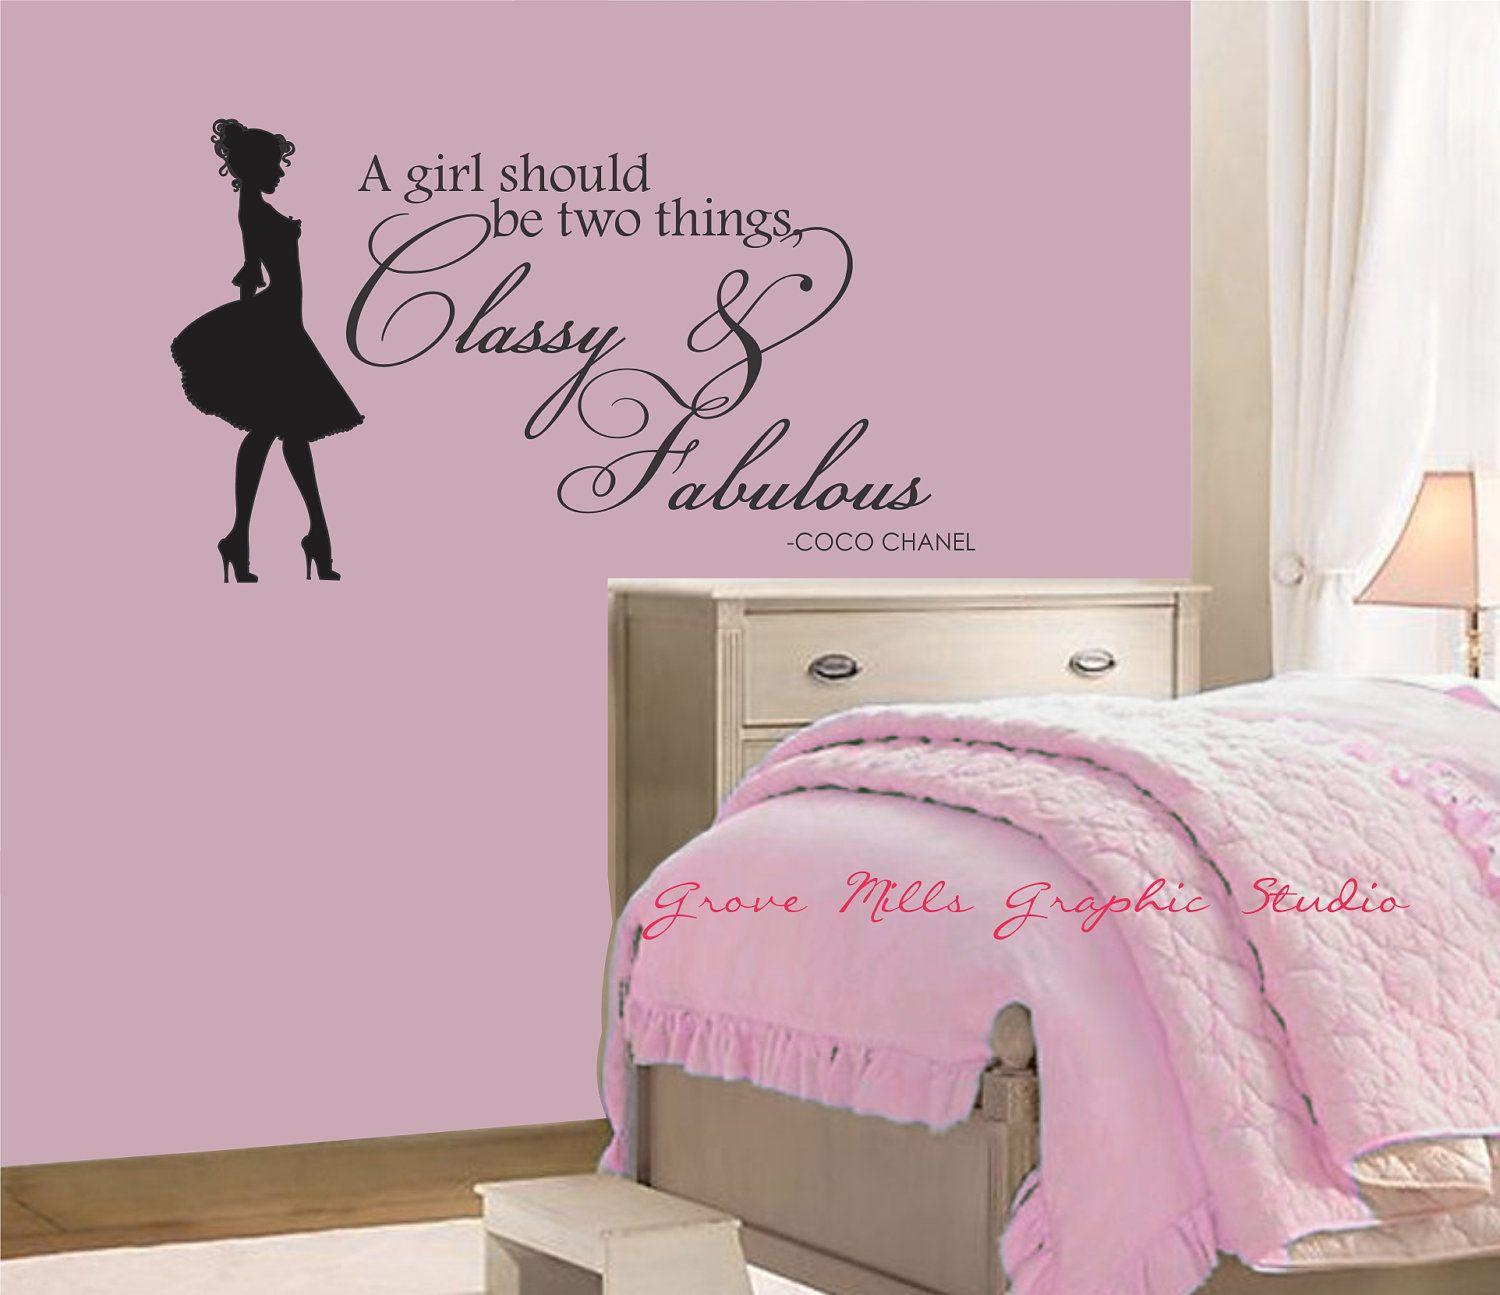 Wall Designs For Girls Room ideas for decorating girls cool ideas to decorate girls bedroom good girls room decorating endearing Classy And Fabulous Wall Decal Coco Chanel Wall Quote Girls Room Wall Decal Girls Room Wall Art Girl Wall Decor